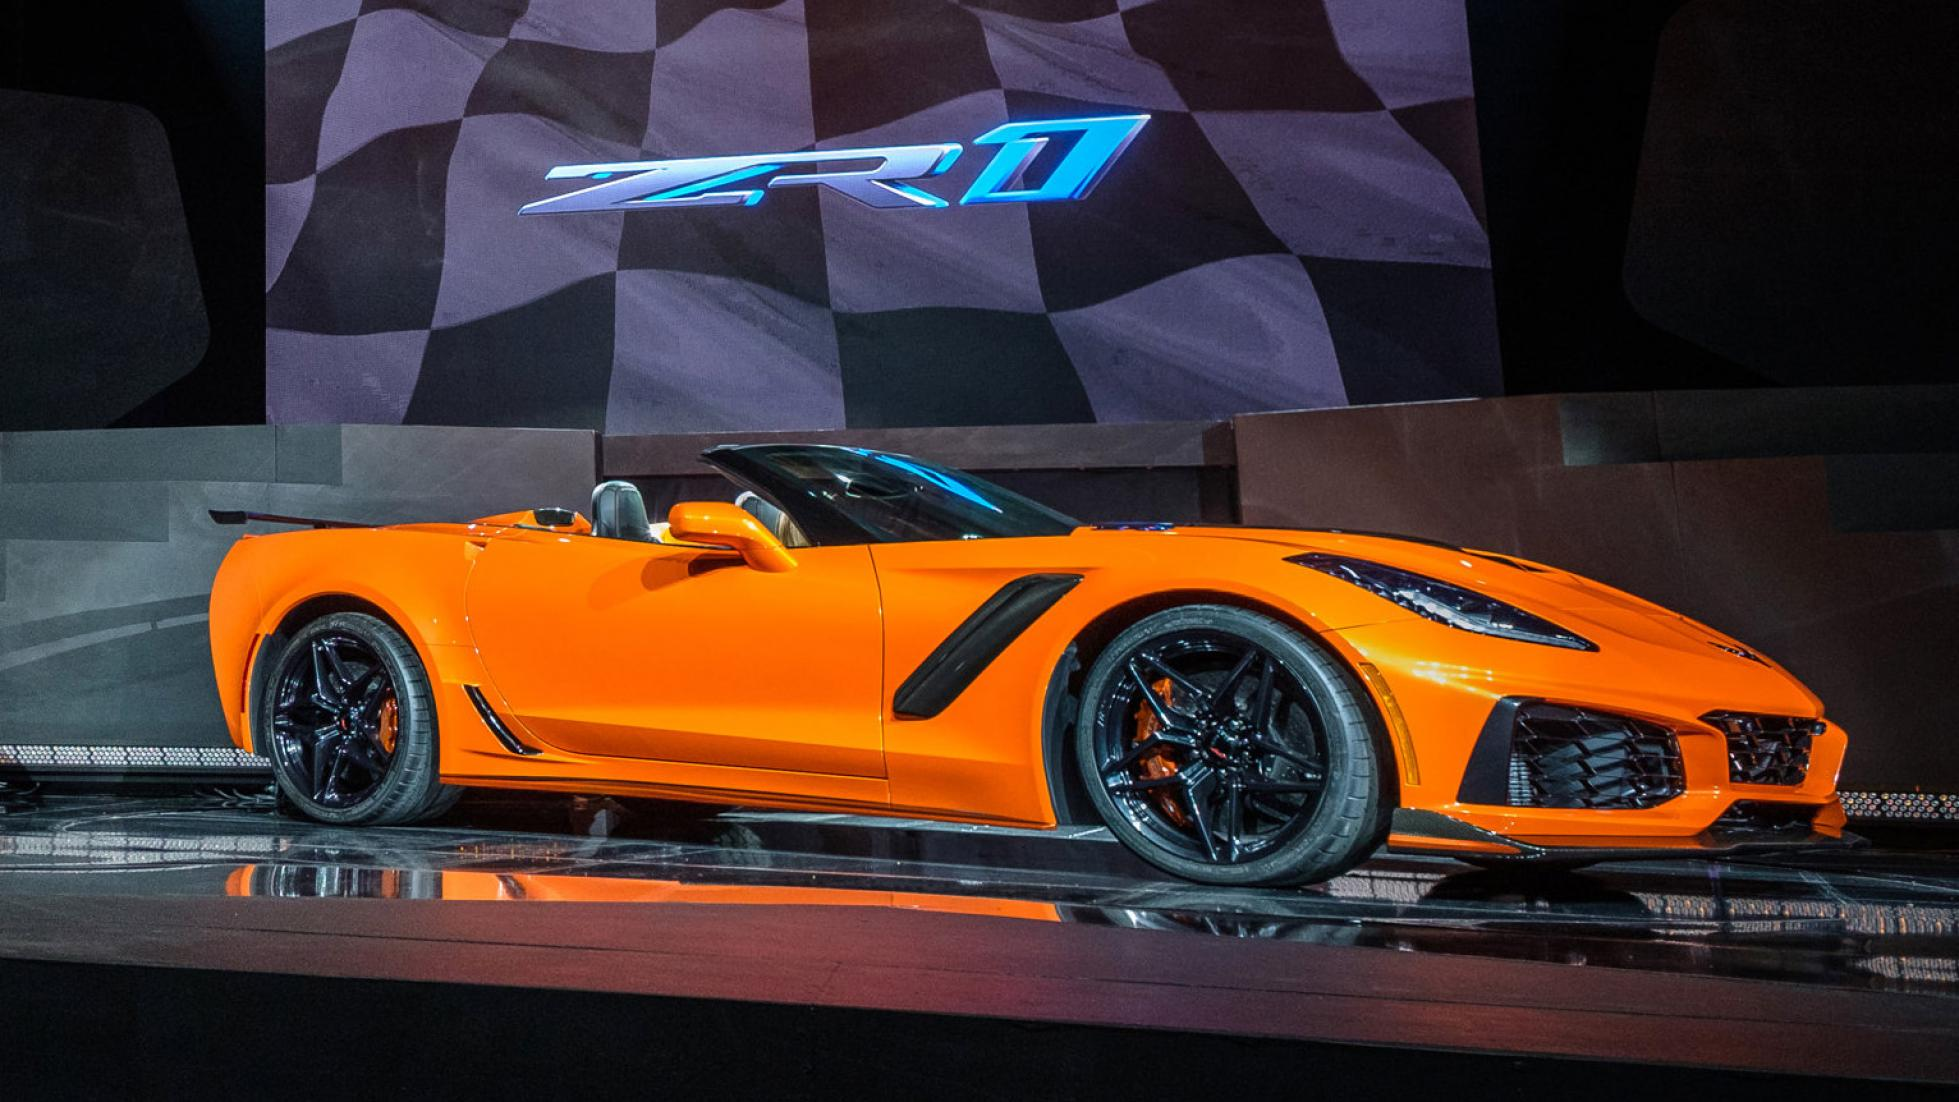 The 2019 Corvette ZR1 Convertible makes its world debut Tuesday, November 28, 2017 in Los Angeles, California. The Corvette ZR1's unique aero package is central to the coupe's 212-mph top speed generated by the 755 horsepower LT5 6.2L supercharged engine. The ZR1 convertible will start at $123,995 and will go on sale in the spring of 2018.)